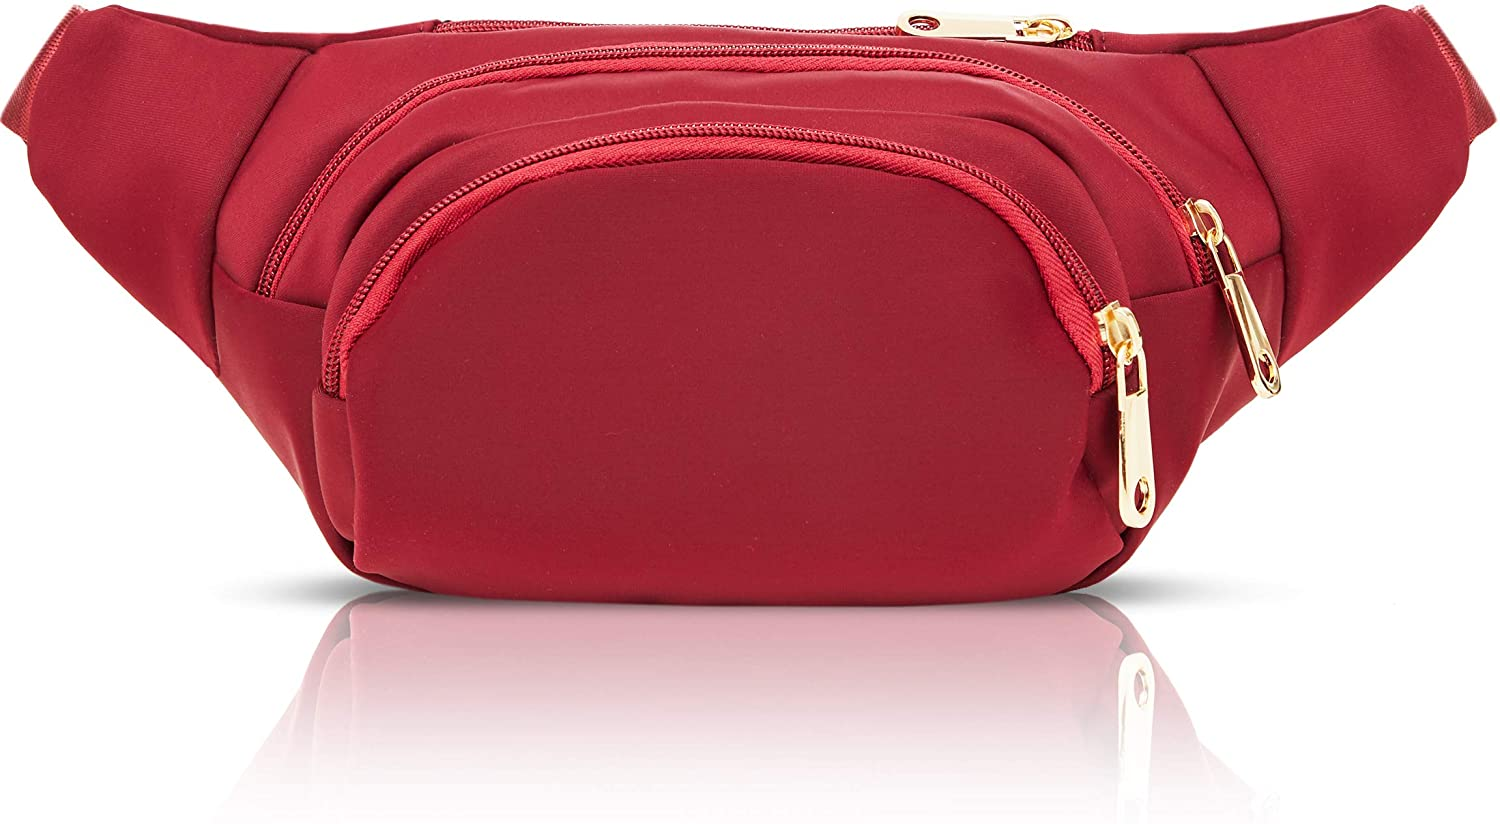 Red Plus Size Fanny Pack with Adjustable Strap 34-60 Inches, Expands to 5XL